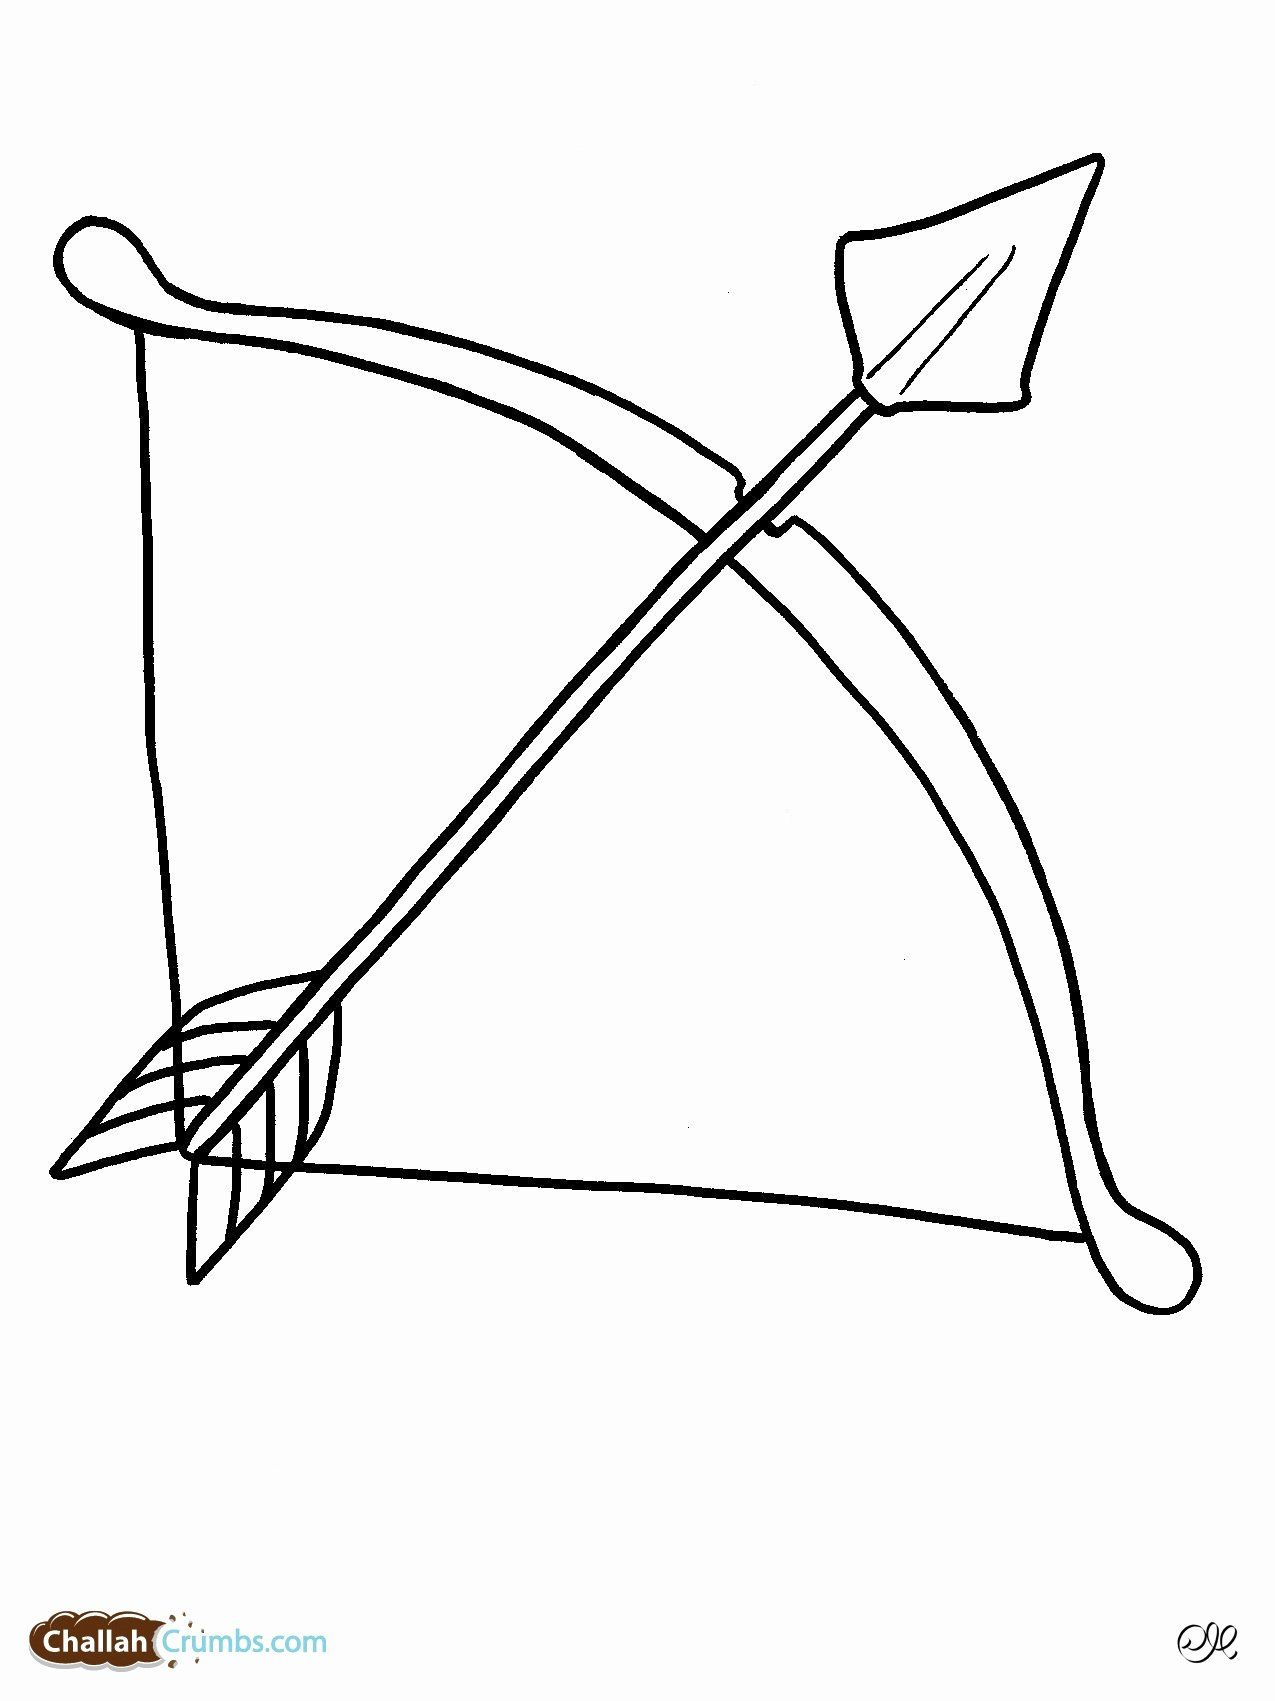 Bow And Arrow Coloring Page Beautiful Archery Arrow Drawing At Getdrawings Arrow Drawing Coloring Pages Bow Drawing